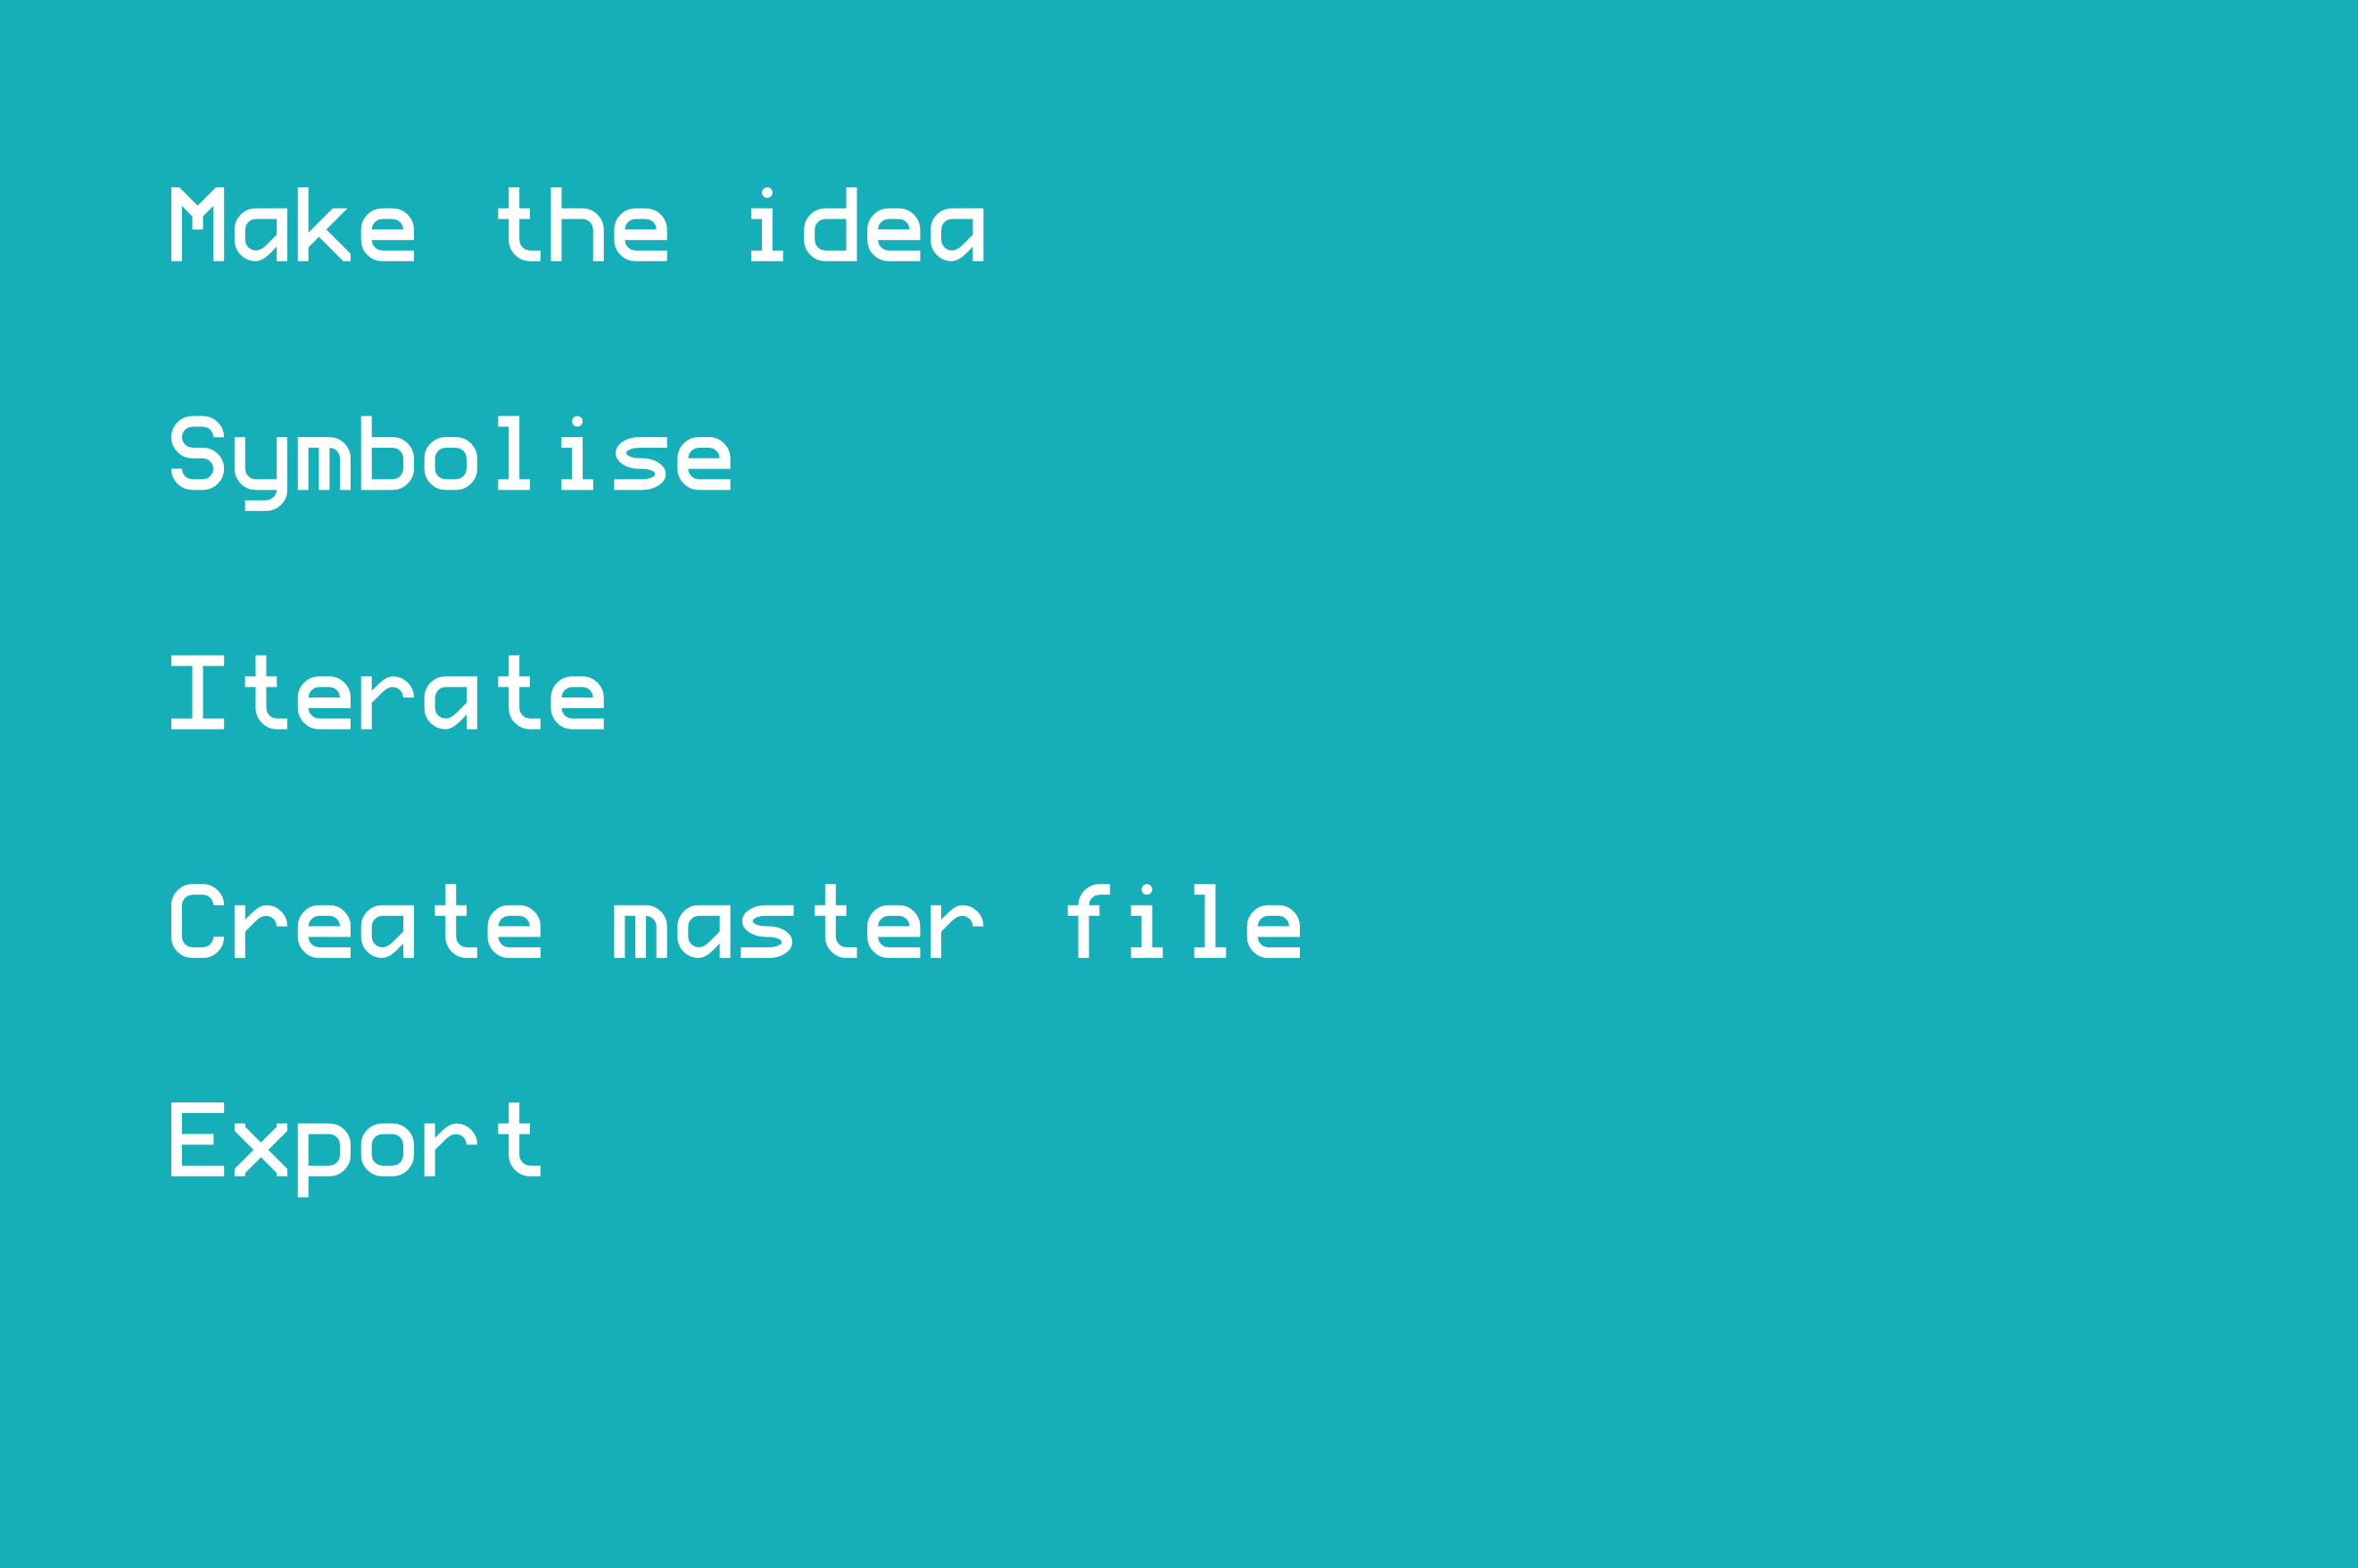 - Make the idea - Symbolise - Iterate - Create master file - Export